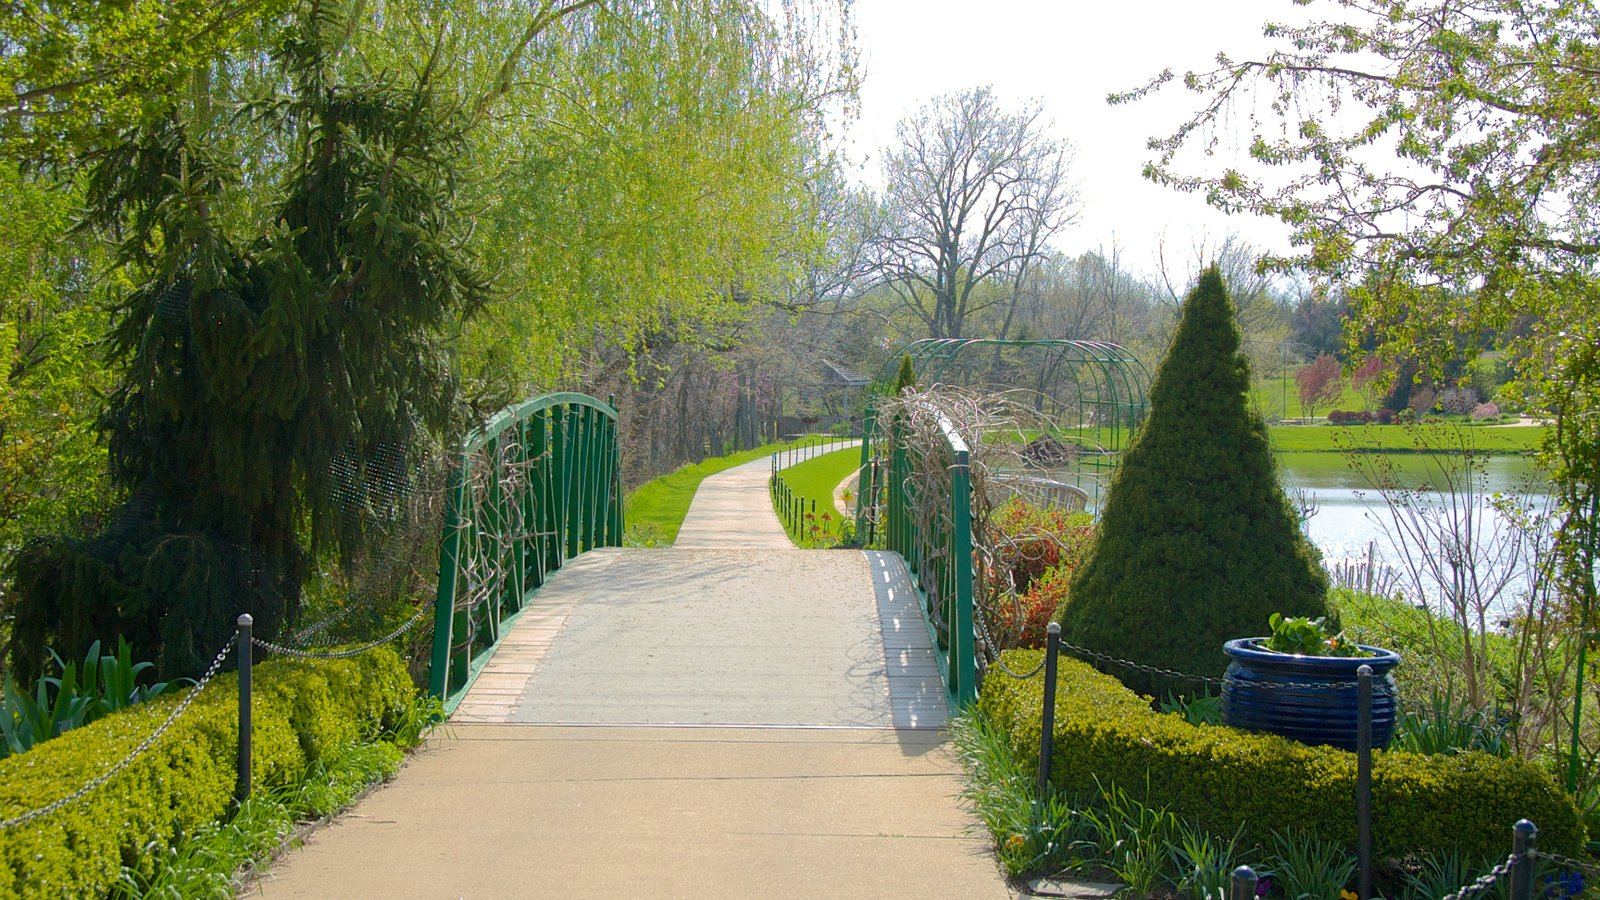 Overland Park Arboretum And Botanical Gardens Showing A Garden, Landscape  Views And A Bridge